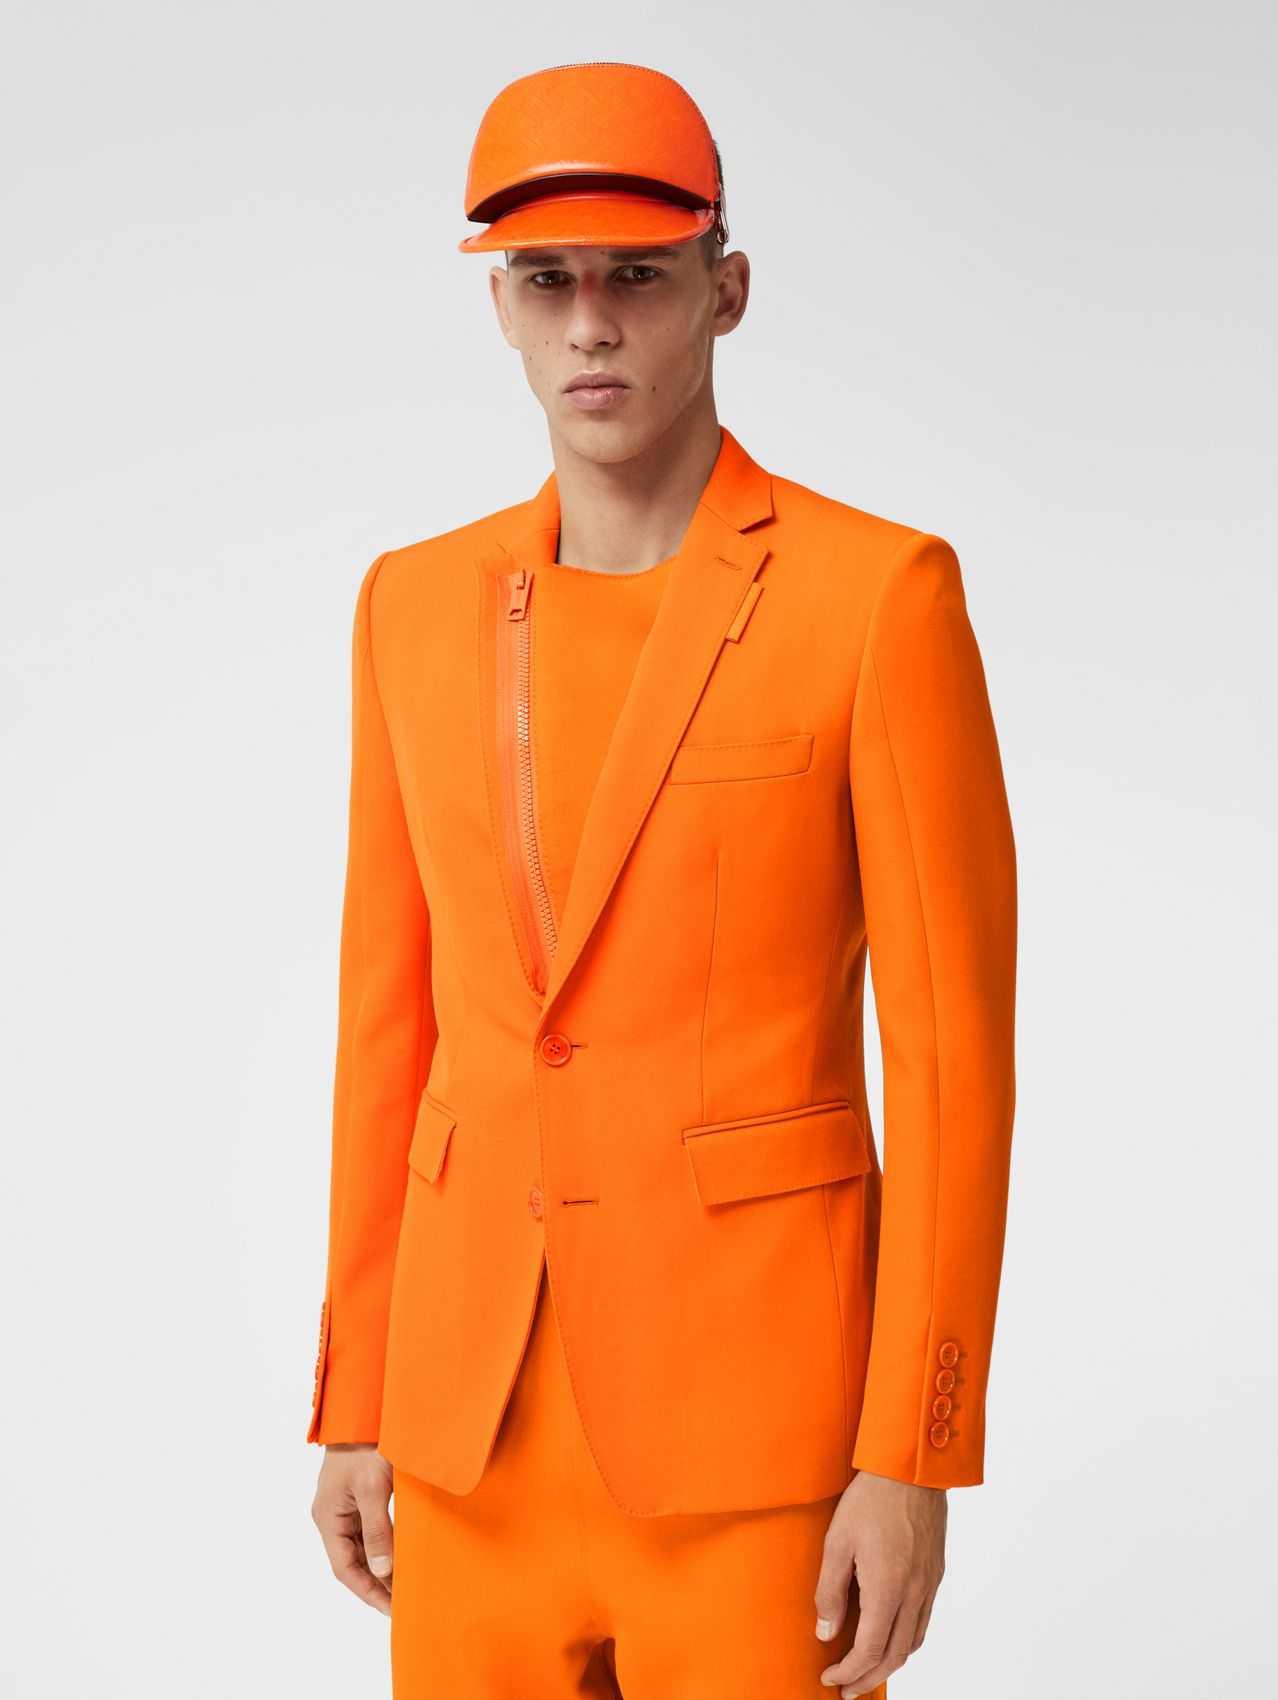 English Fit Grain De Poudre Wool Tailored Jacket in Deep Orange